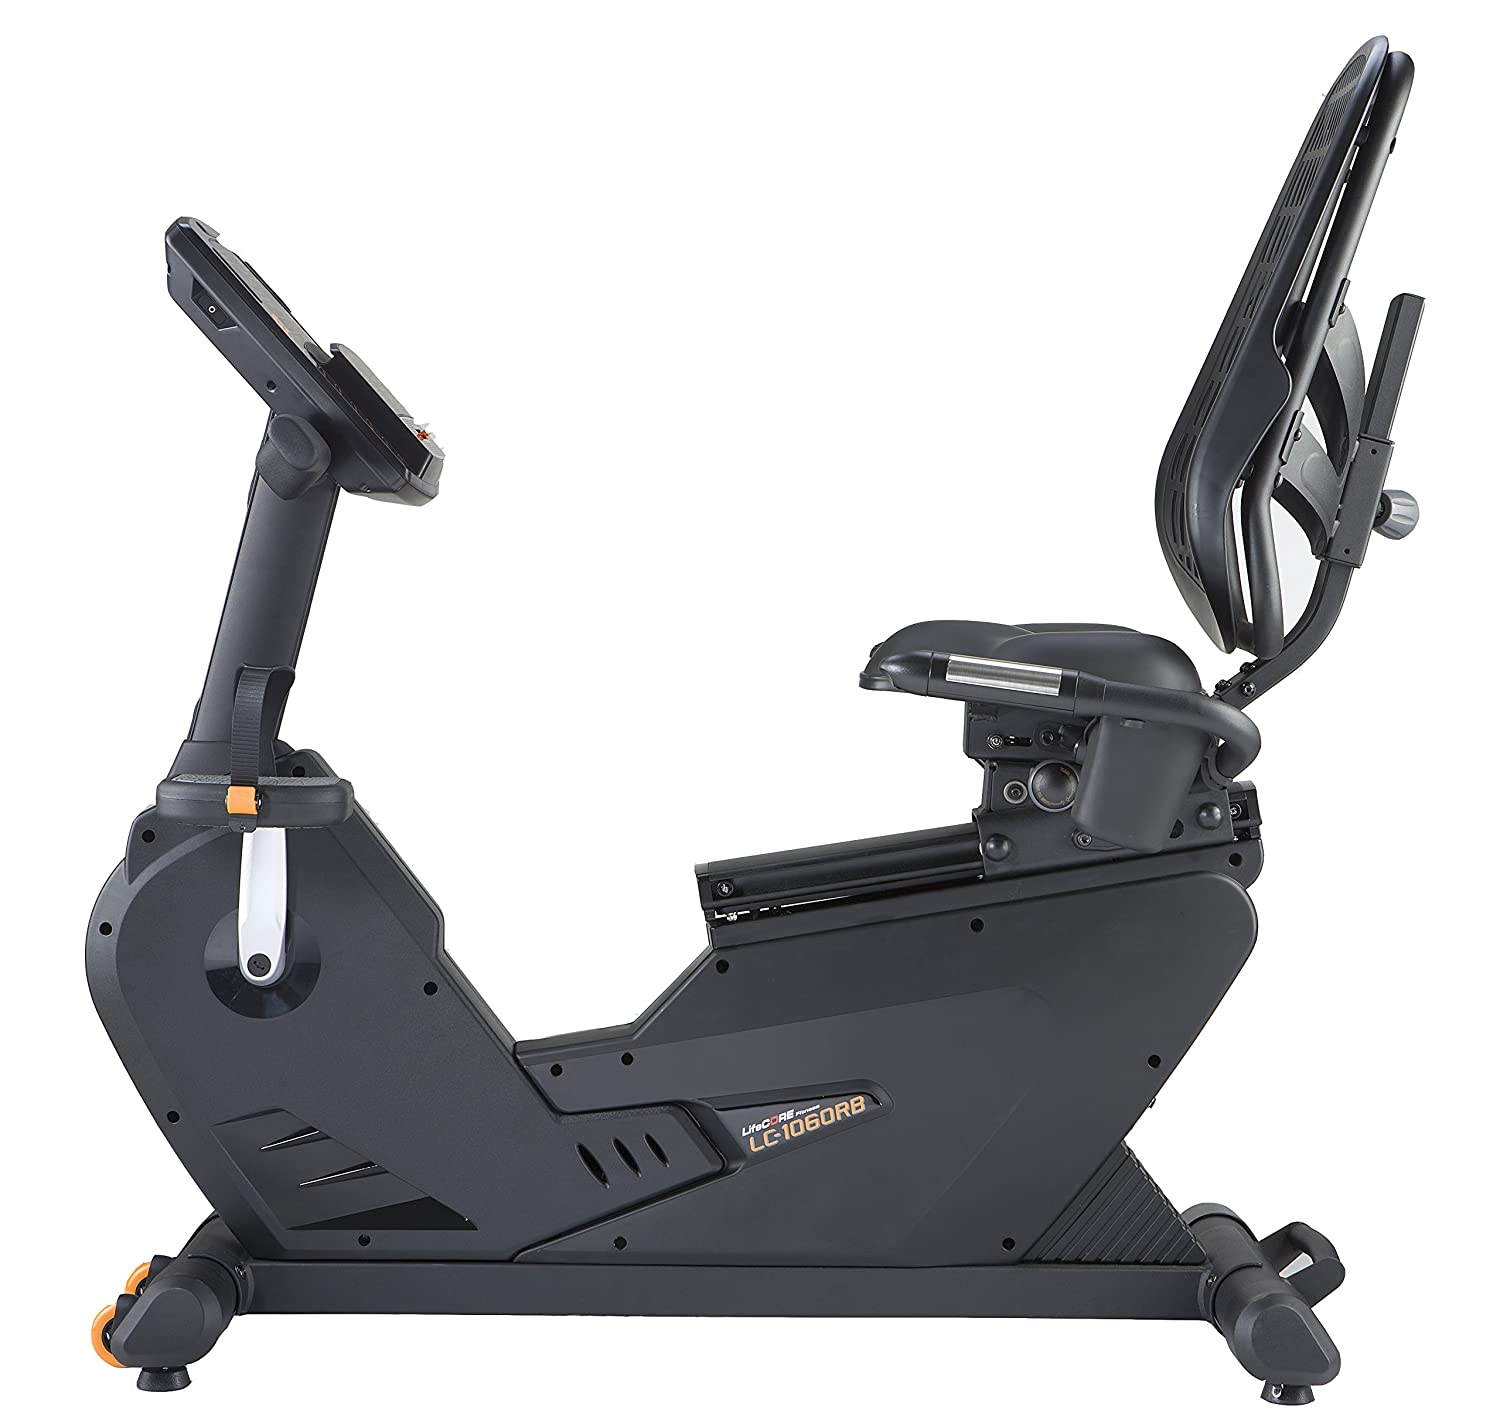 Lifecore Fitness 1060rb Recumbent Exercise Bike Black Nordictrack Motor Wiring Harness Frame Sports Outdoors